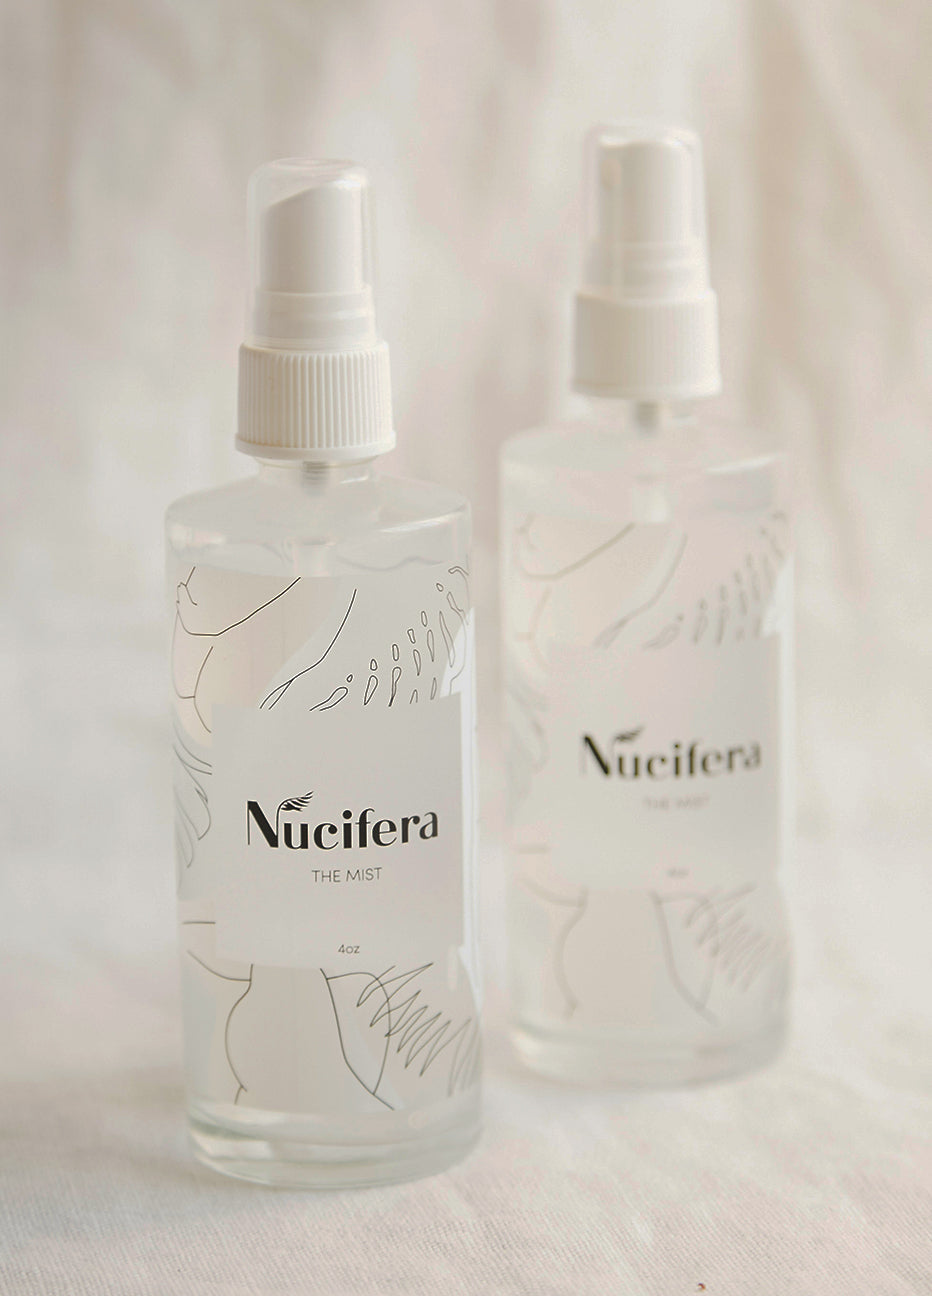 Nucifera The Mist